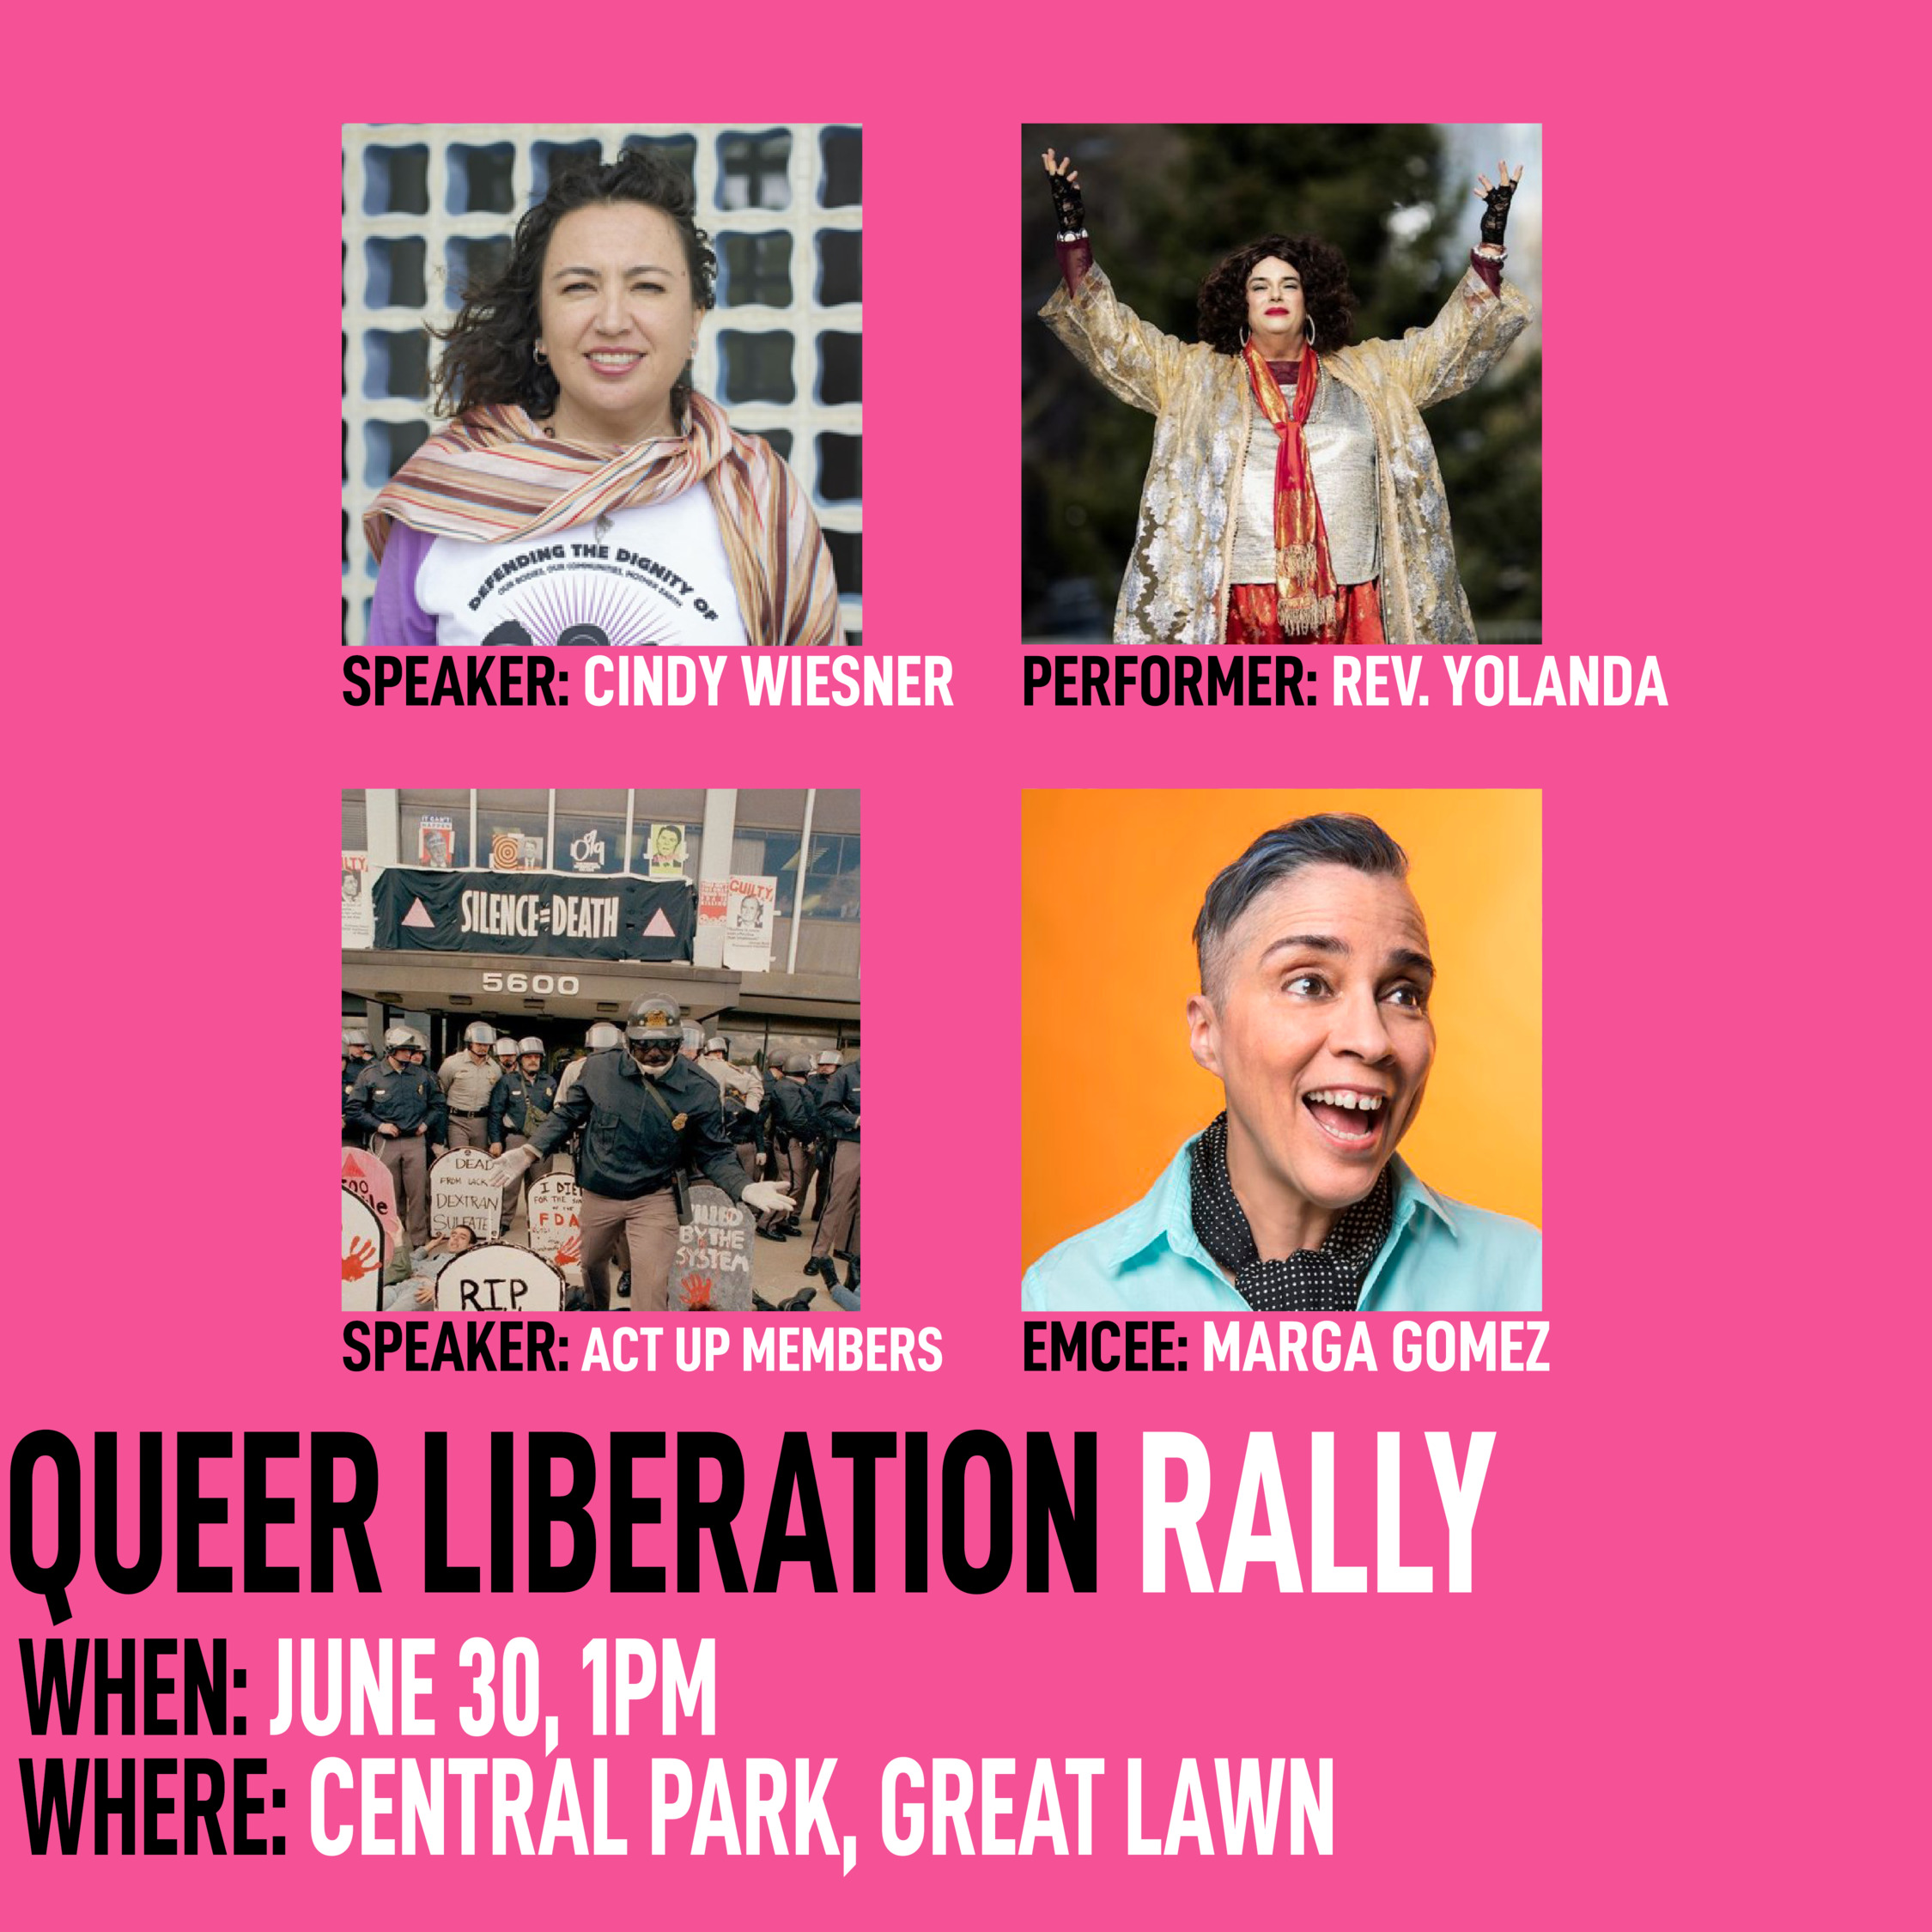 [RPC] Queer Liberation Rally Speakers 4 Square5.jpg